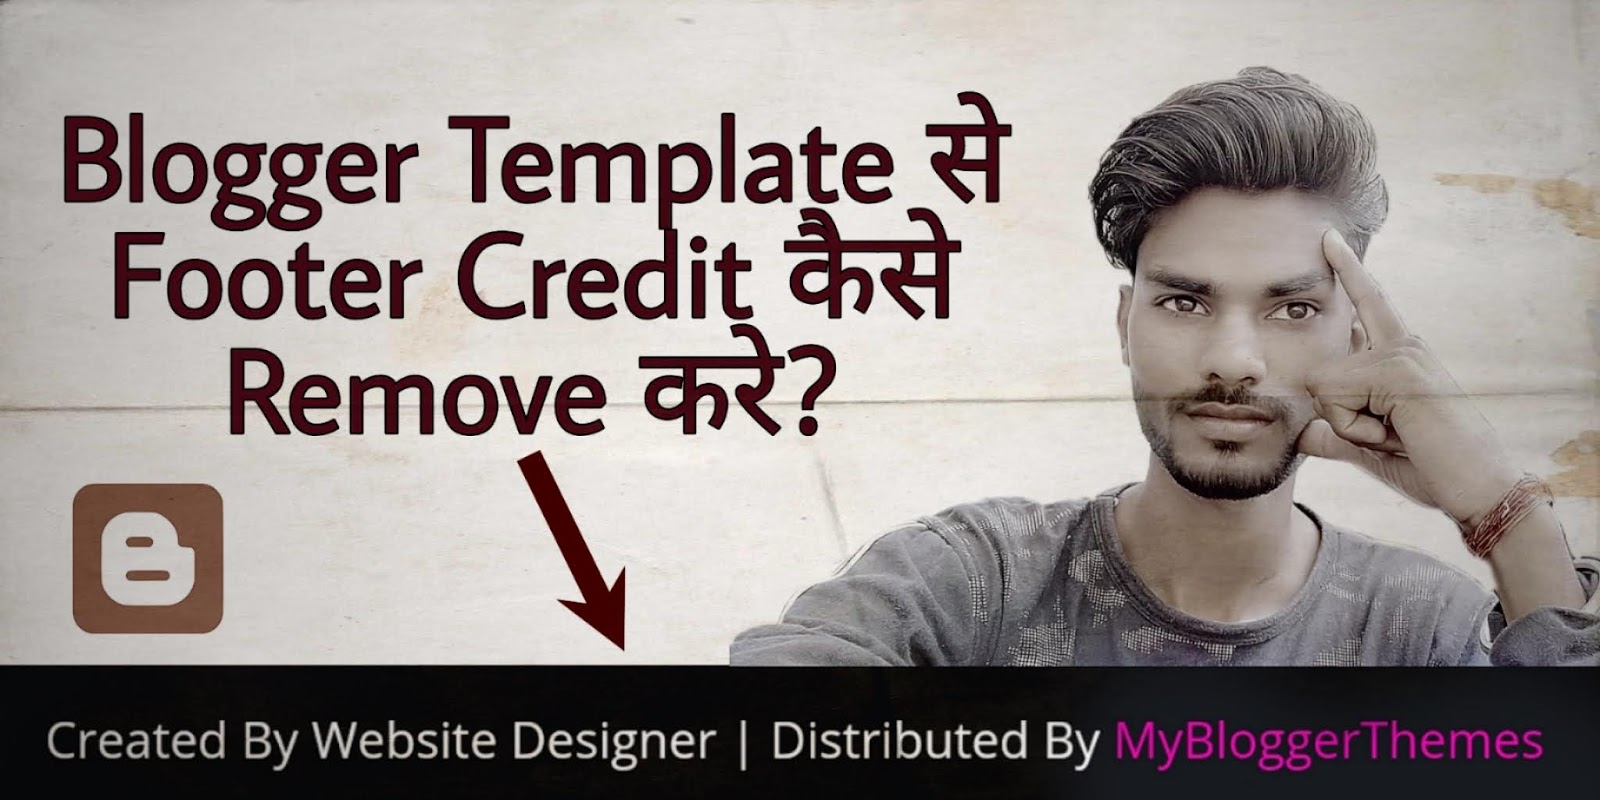 Blogger Template Se Footer Credit Kaise Remove Kare 2020 - पूरी जानकारी